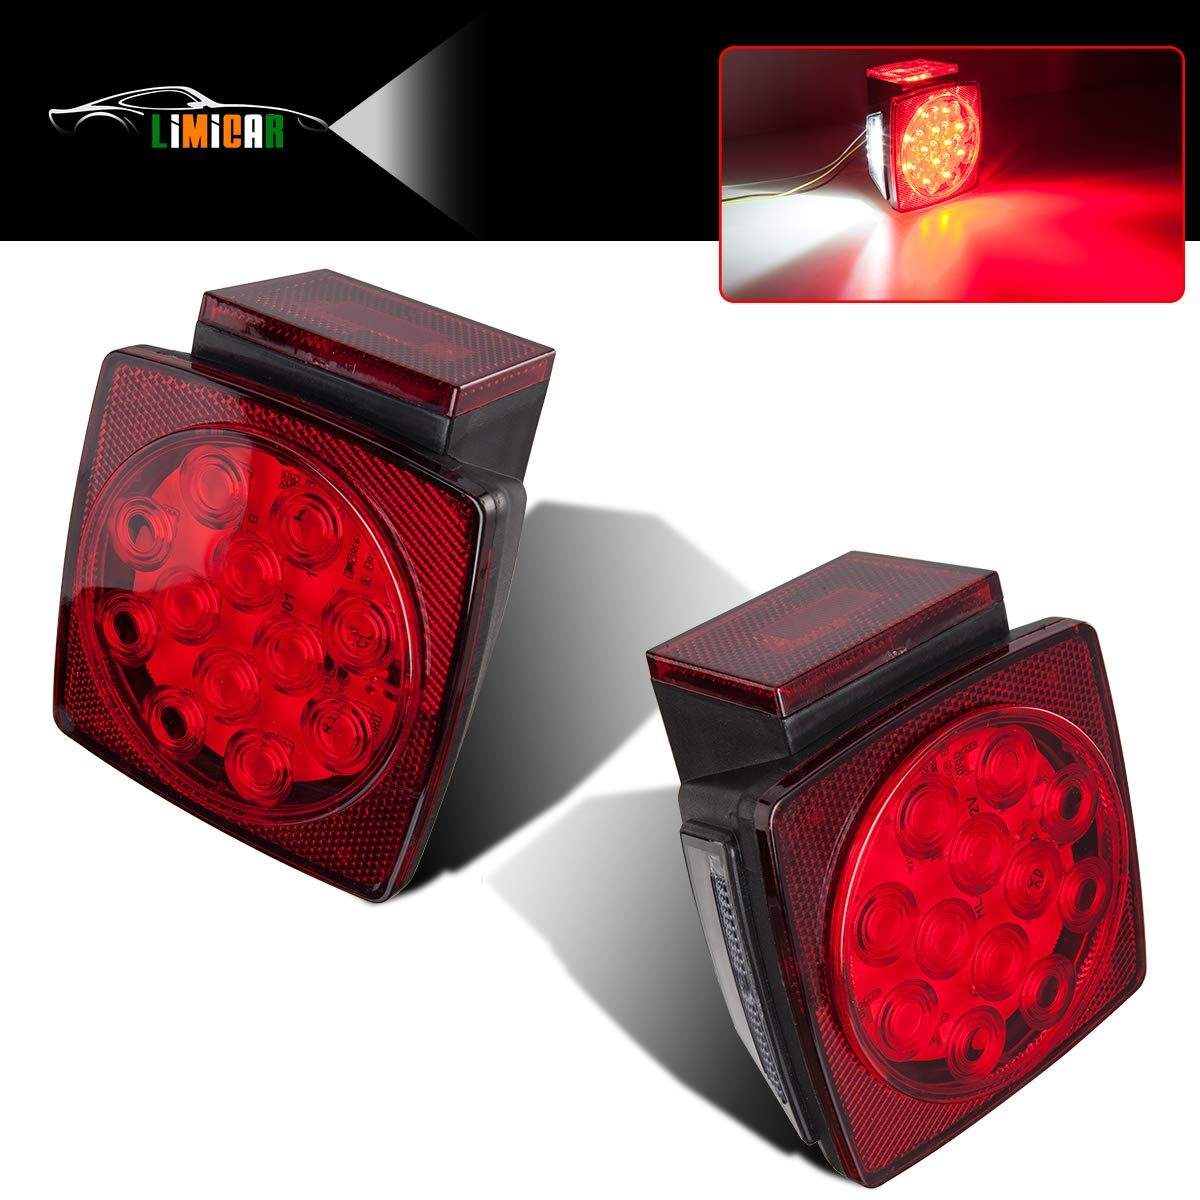 LIMICAR 12V Submersible LED Trailer Light Kit Red White LED Stop Turn Tail License Brake Running Lights for Under 80 Inch Boat Trailer Truck Camper Snowmobile Waterproof (2PCS) by LIMICAR